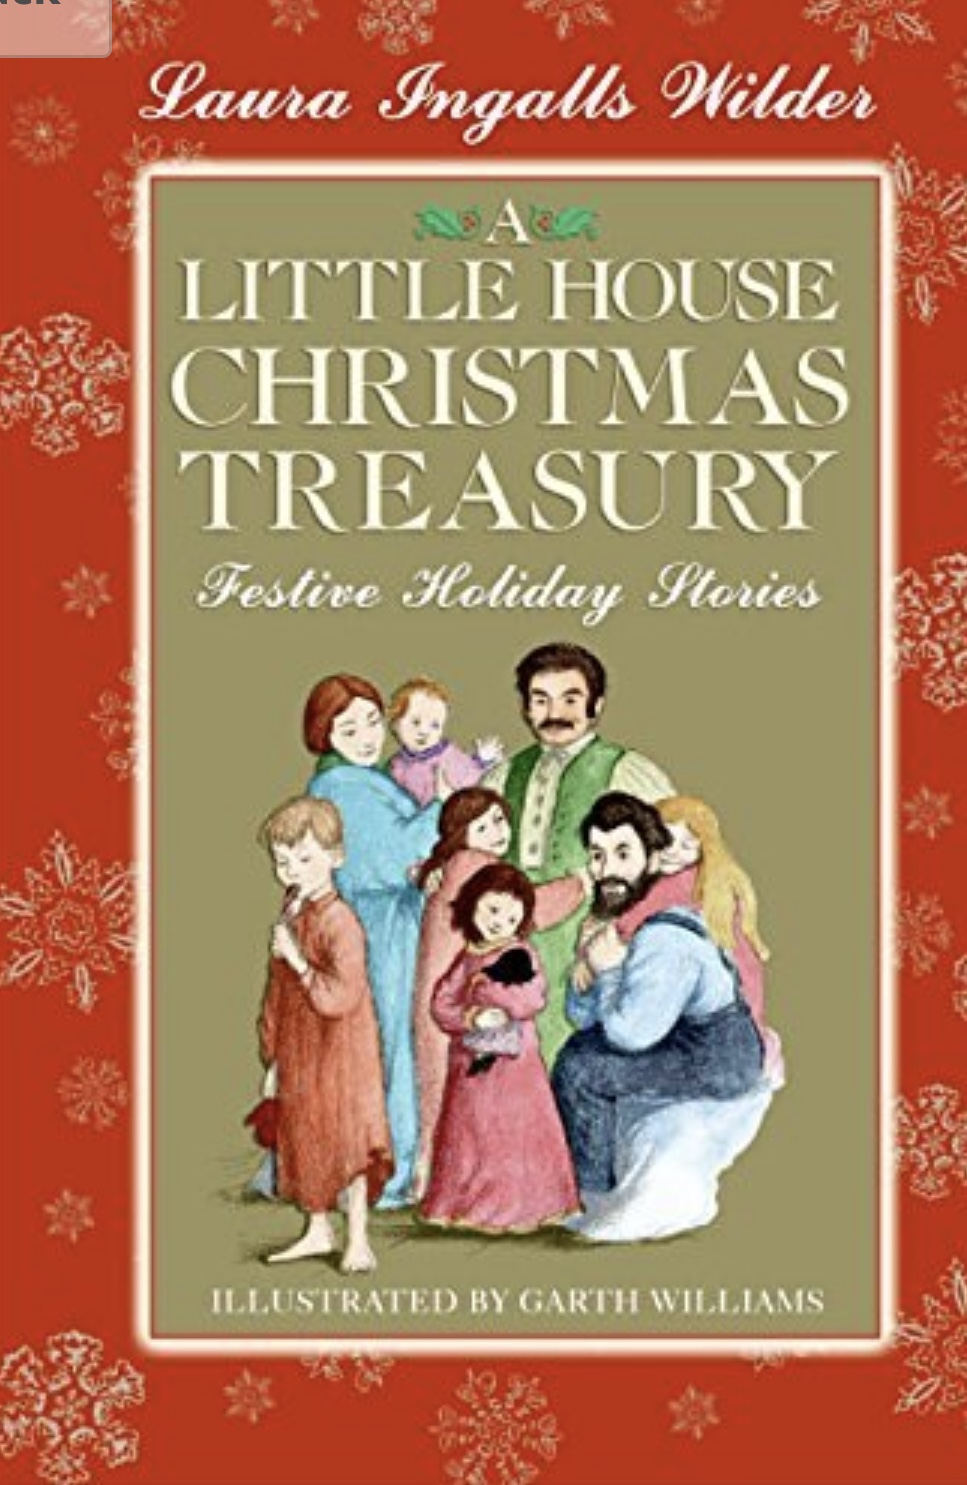 The Little House Christmas Treasury